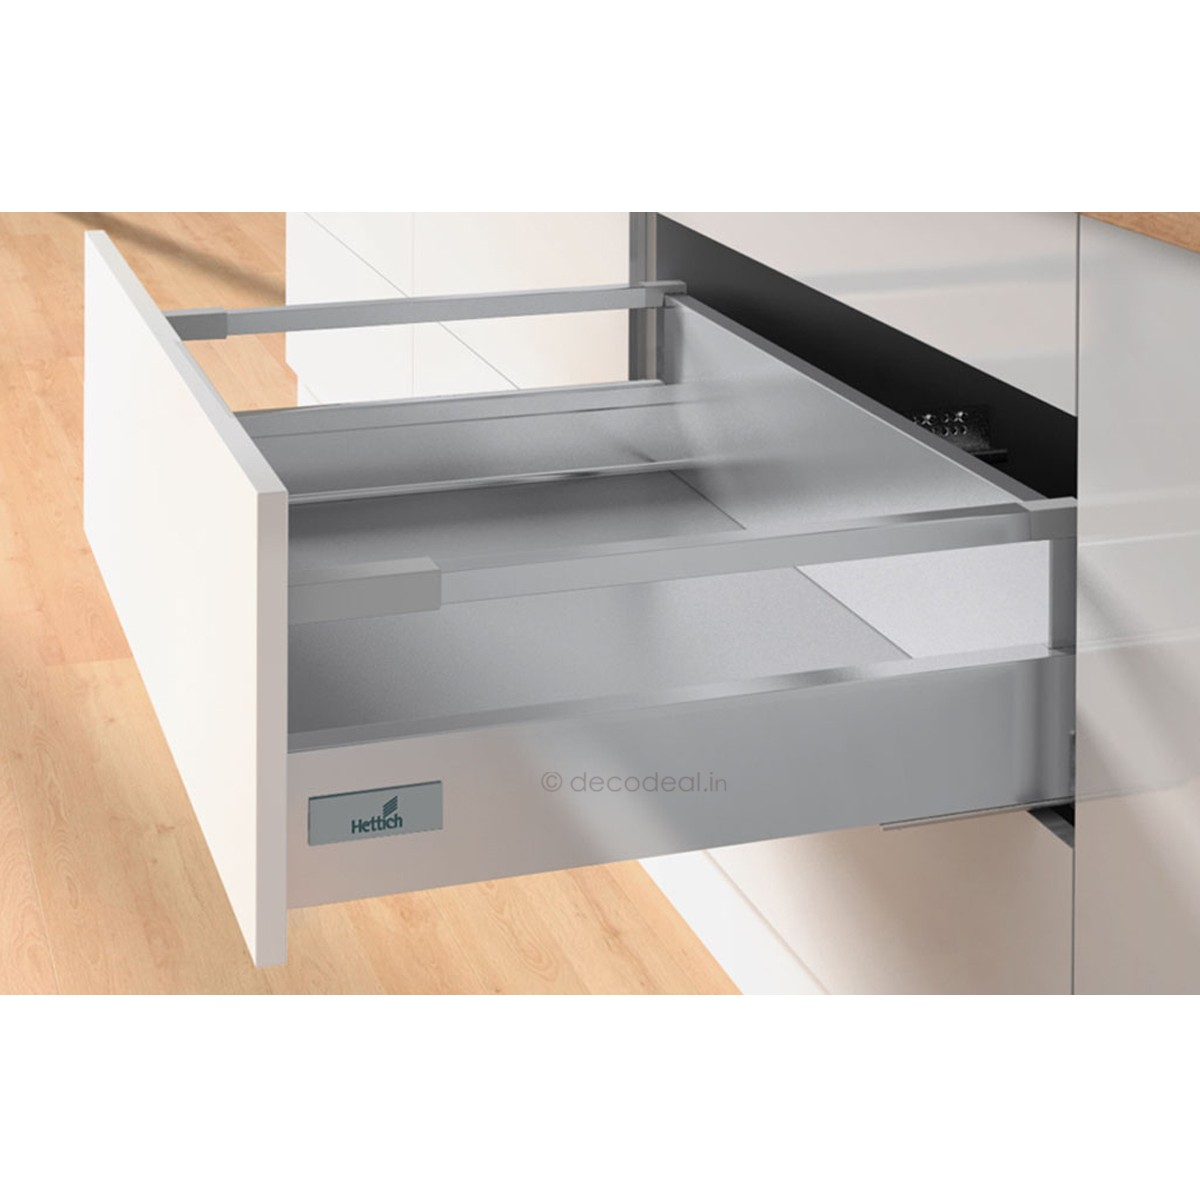 INNOTECH - 470 MM (30 KG), SILENT, DRAWER SYSTEM INNOTECH - DRAWER, HEIGHT  70 / 144 MM, HETTICH - Pullouts - Storage Units - Kitchen